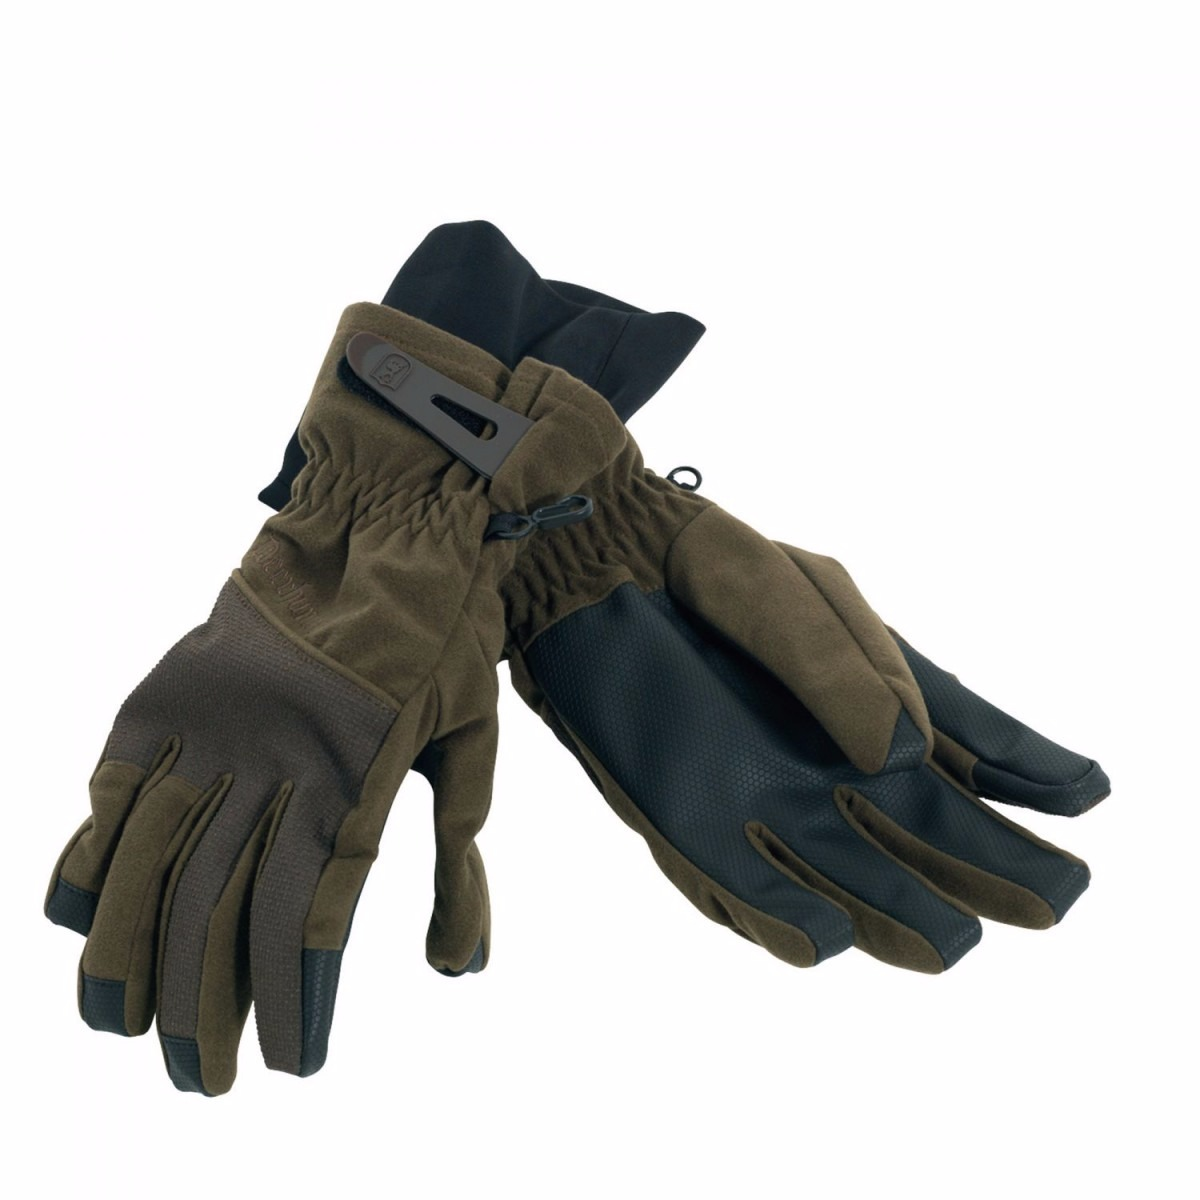 Recon Winter Gloves - Beluga